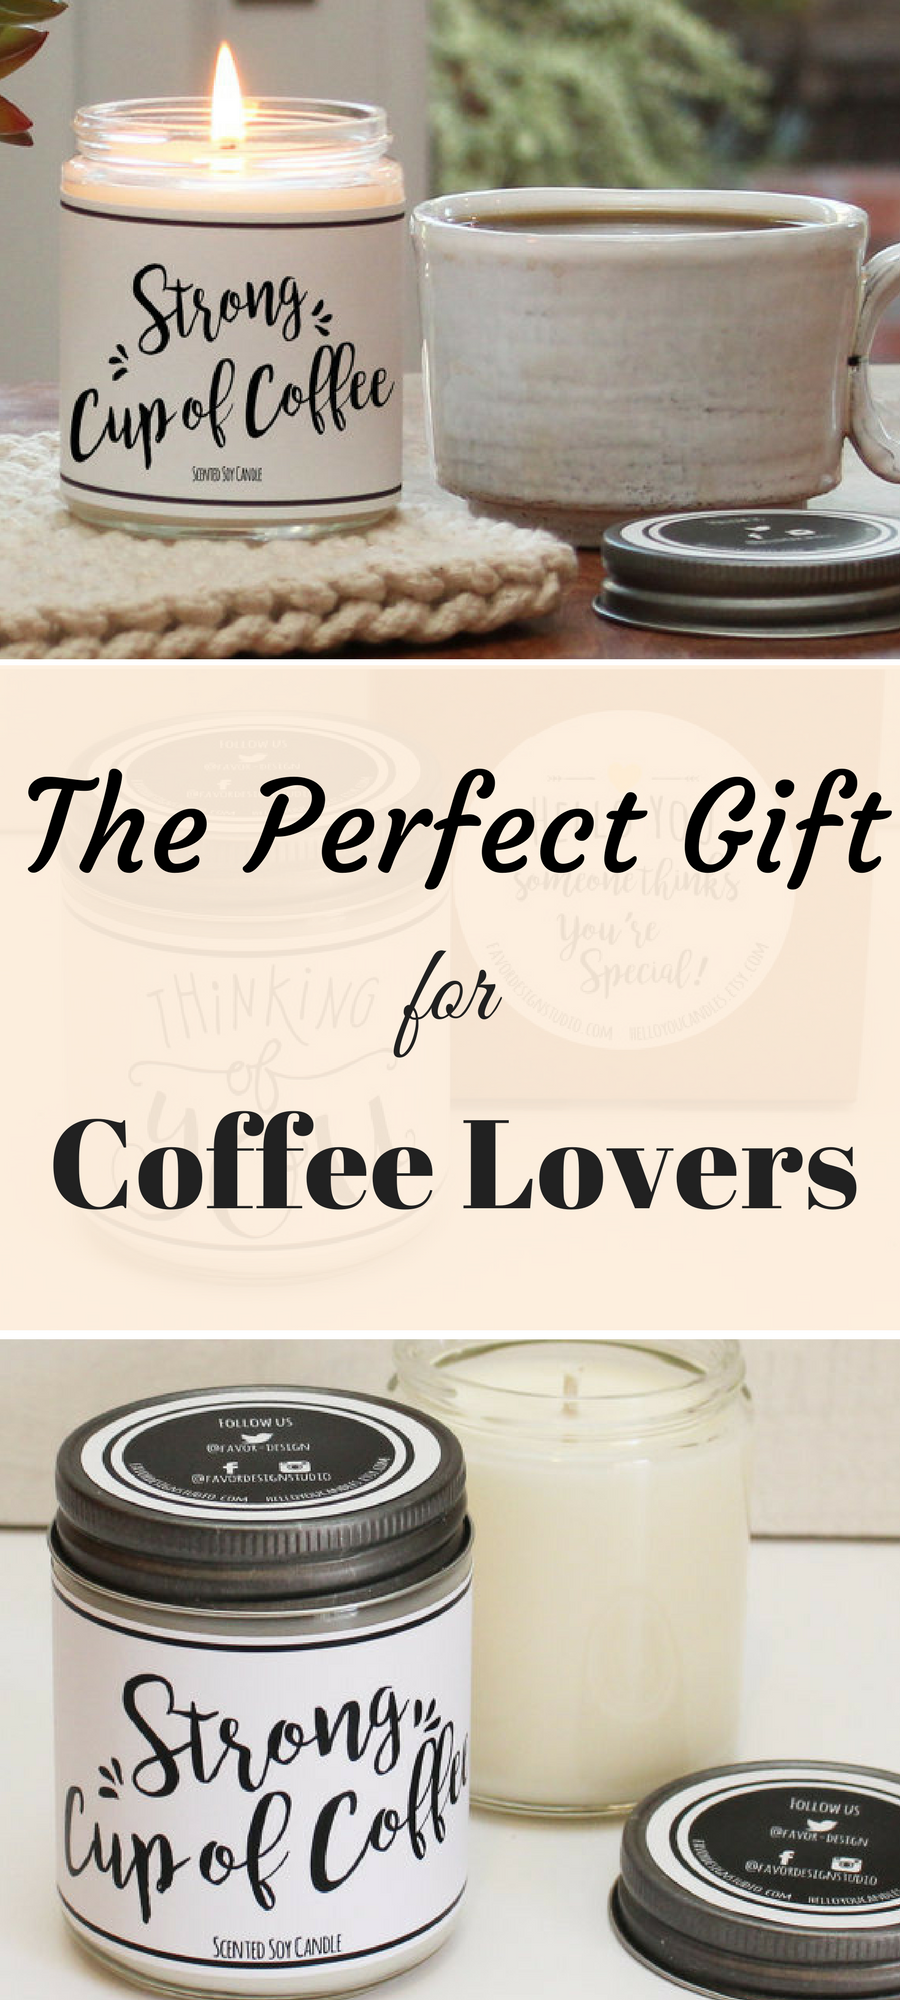 The Perfect Gift For Coffee Lovers